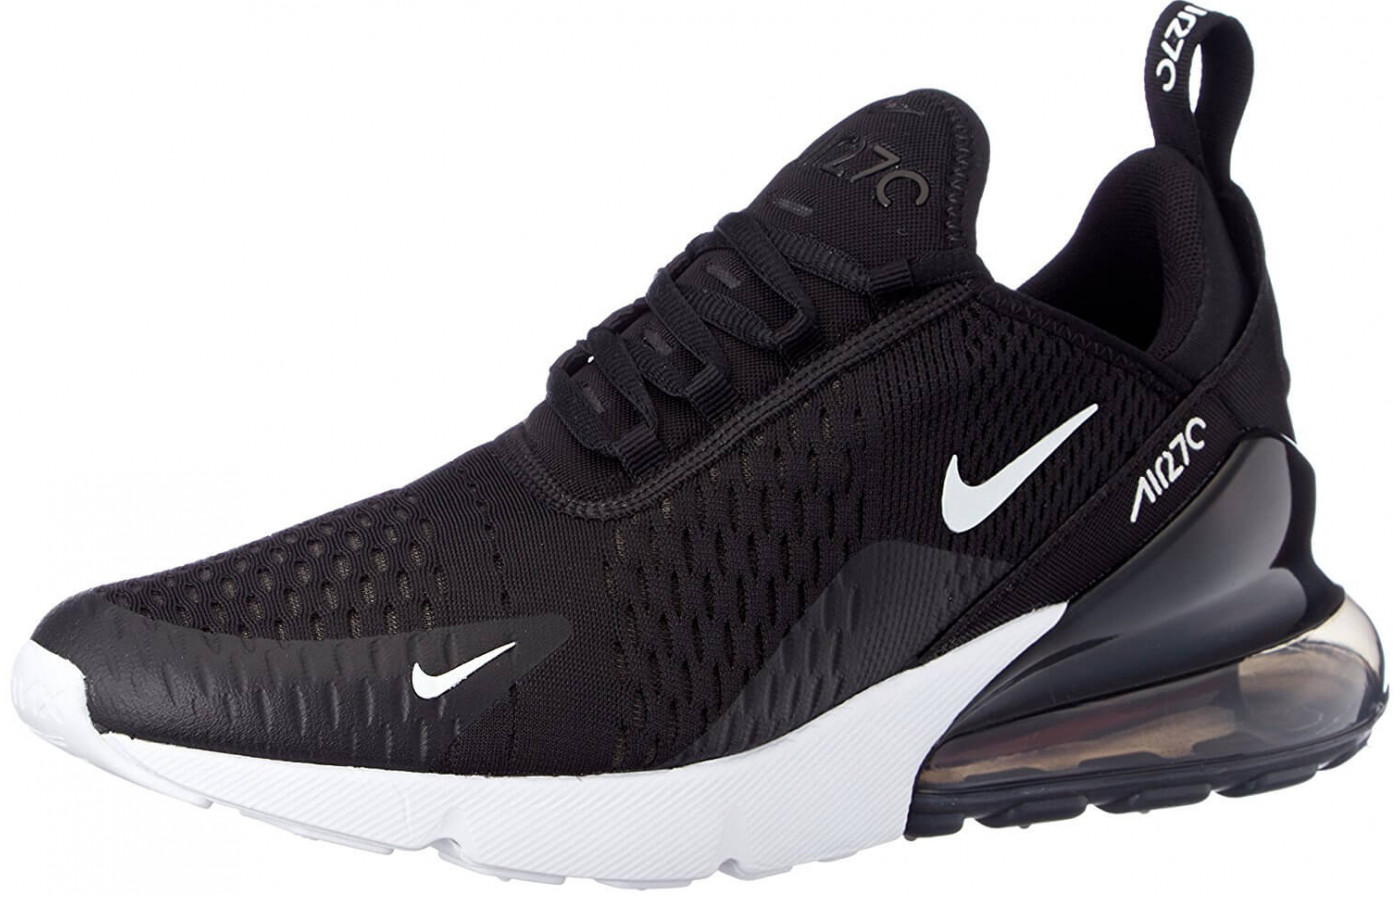 cheaper 5acf1 7d554 Nike Air Max 270